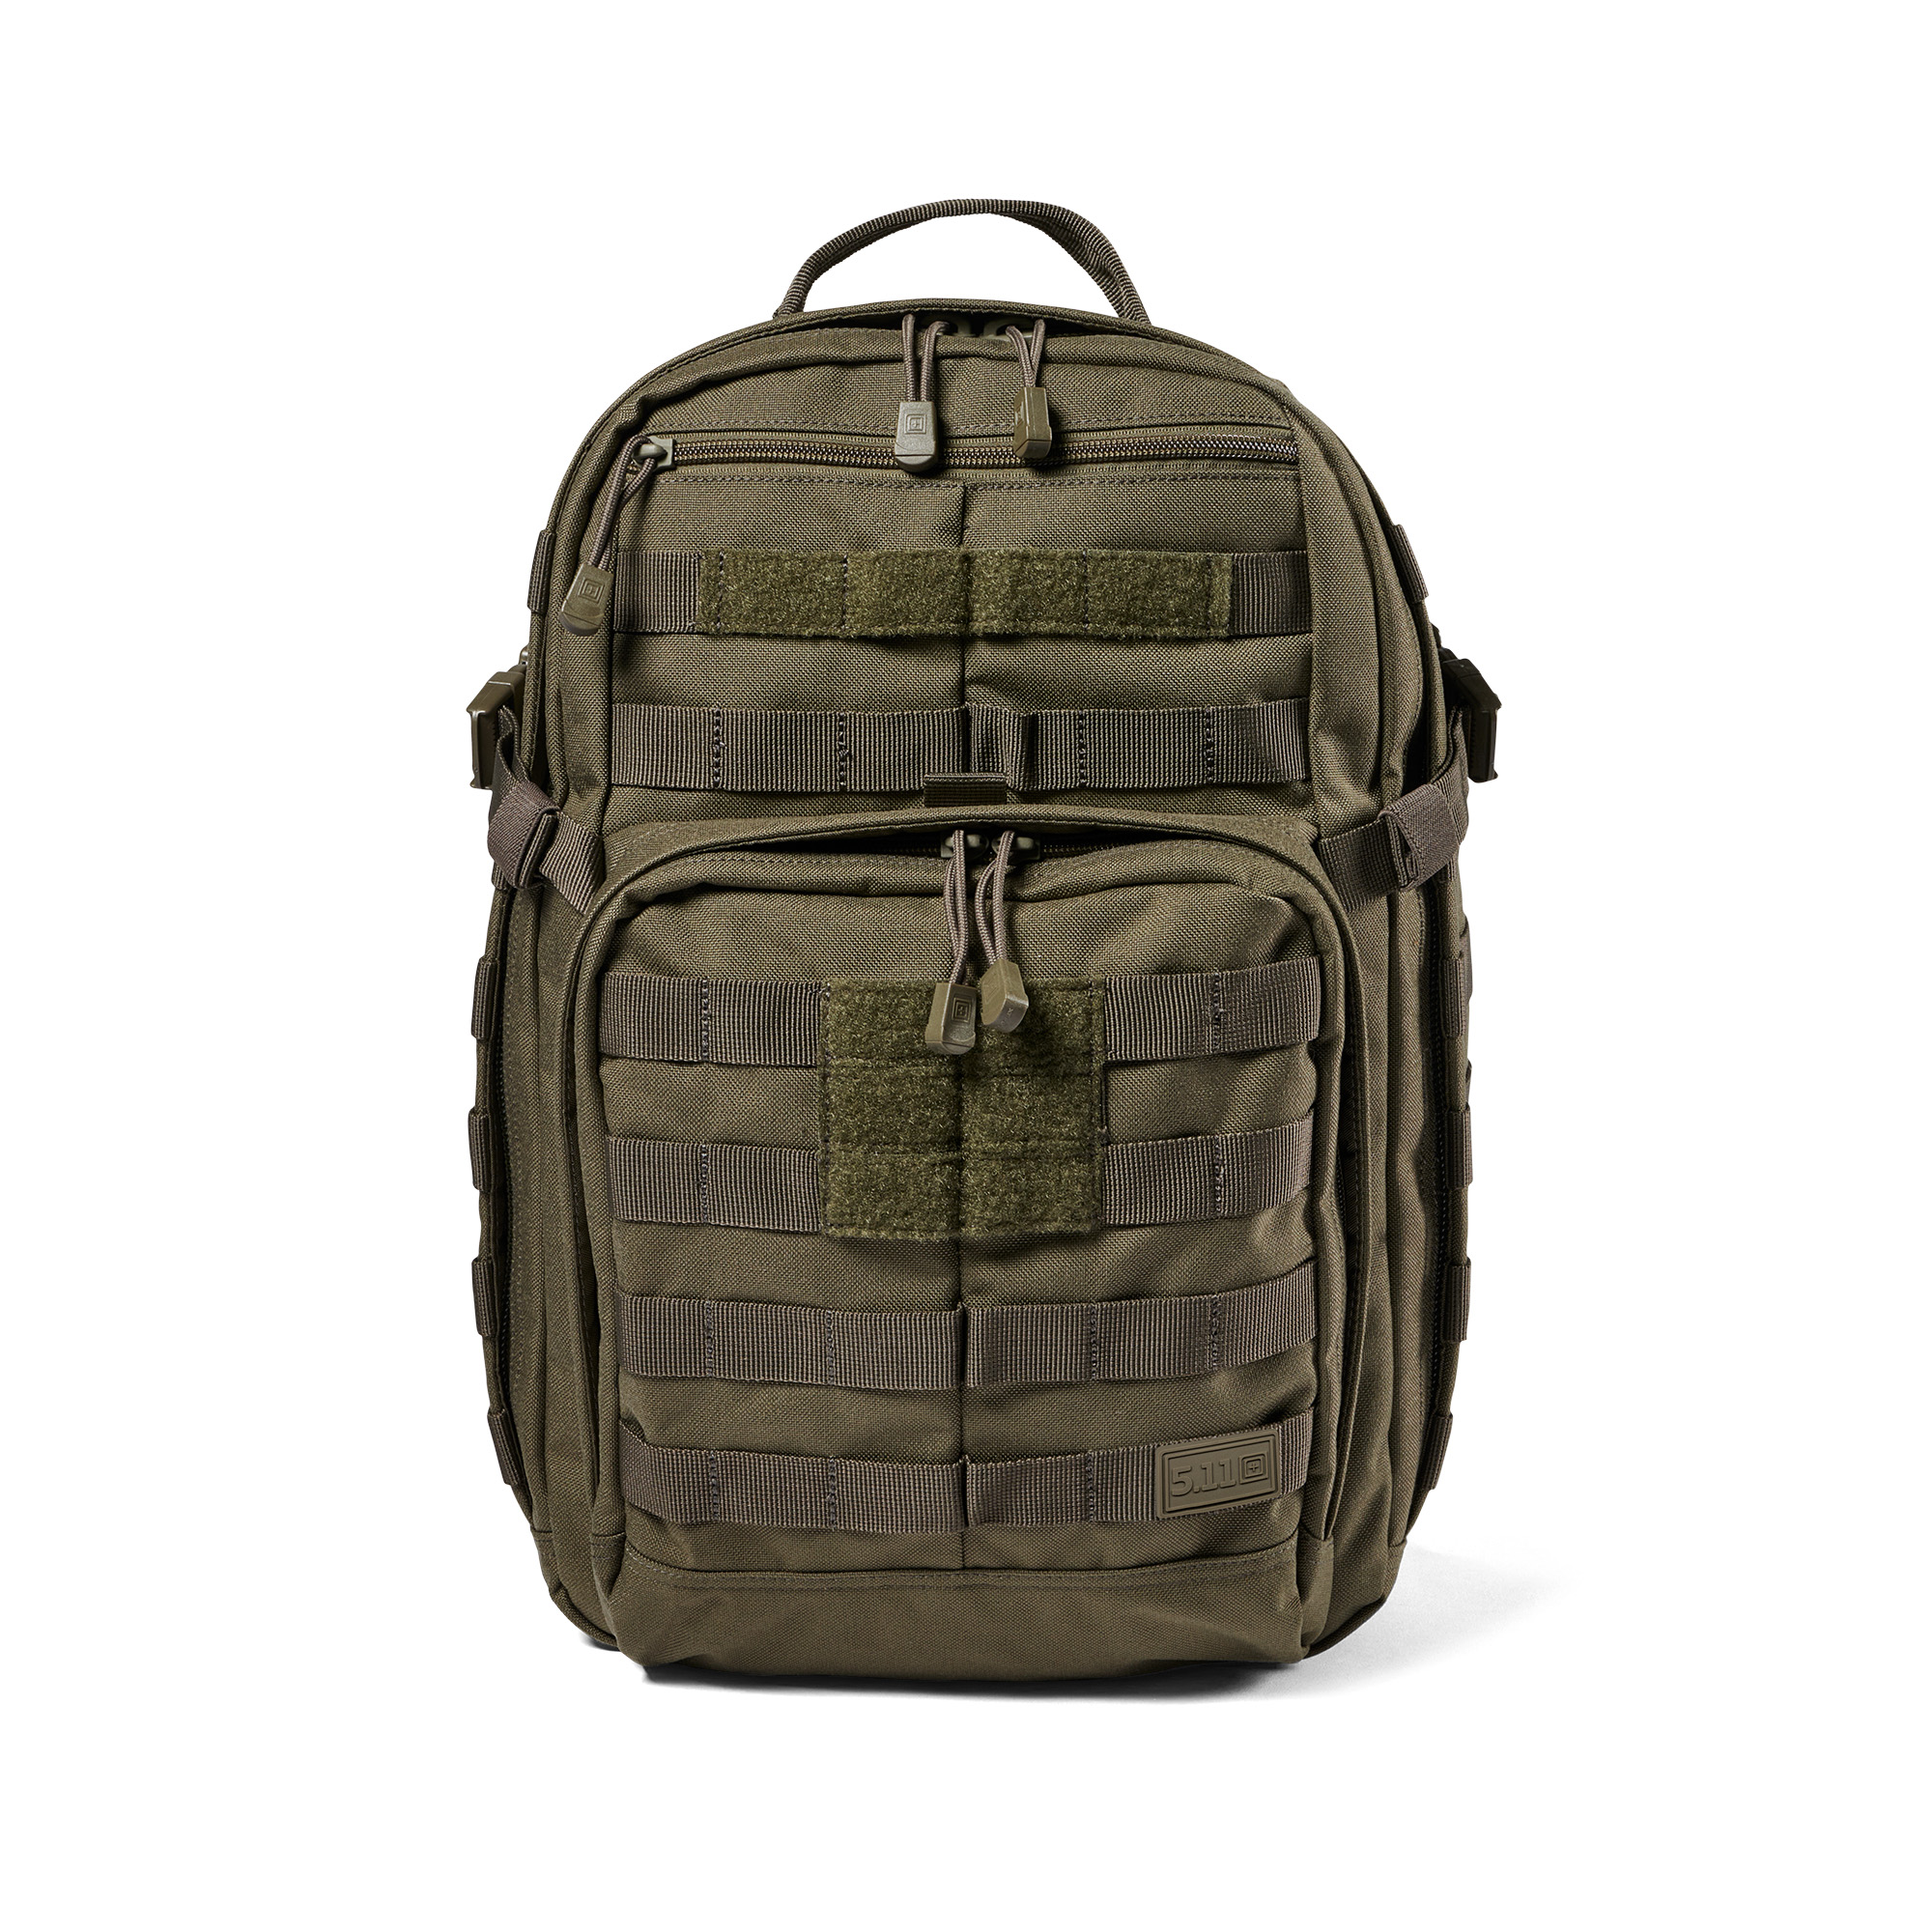 Balo 5.11 Tactical Rush 12 2.0 - Ranger Green